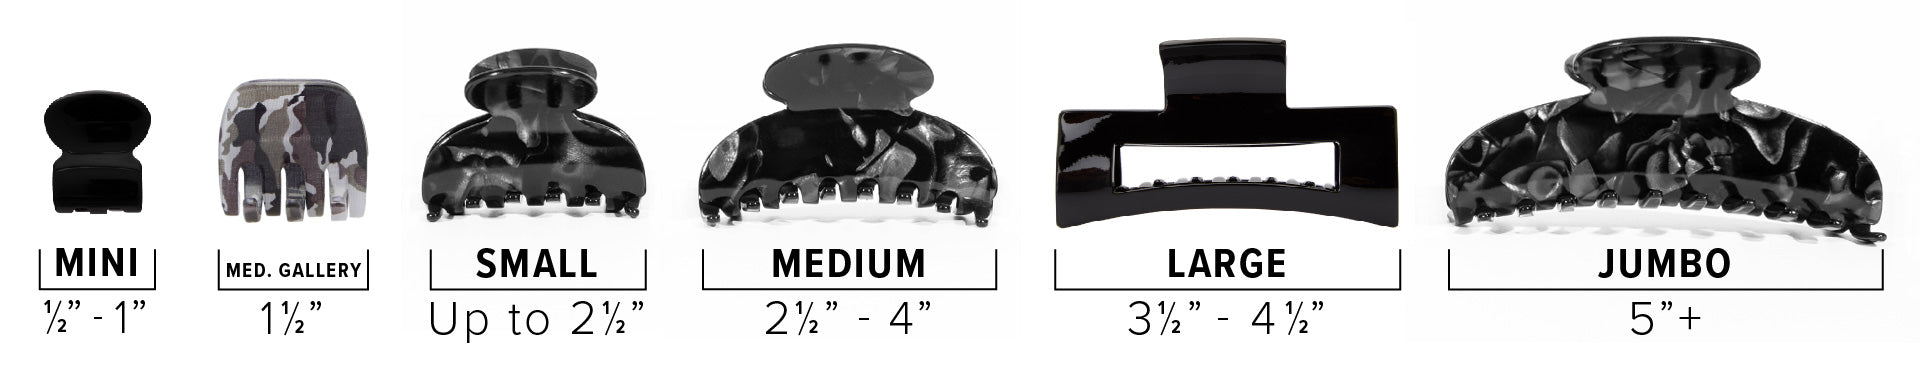 Jaw clip sizing guide